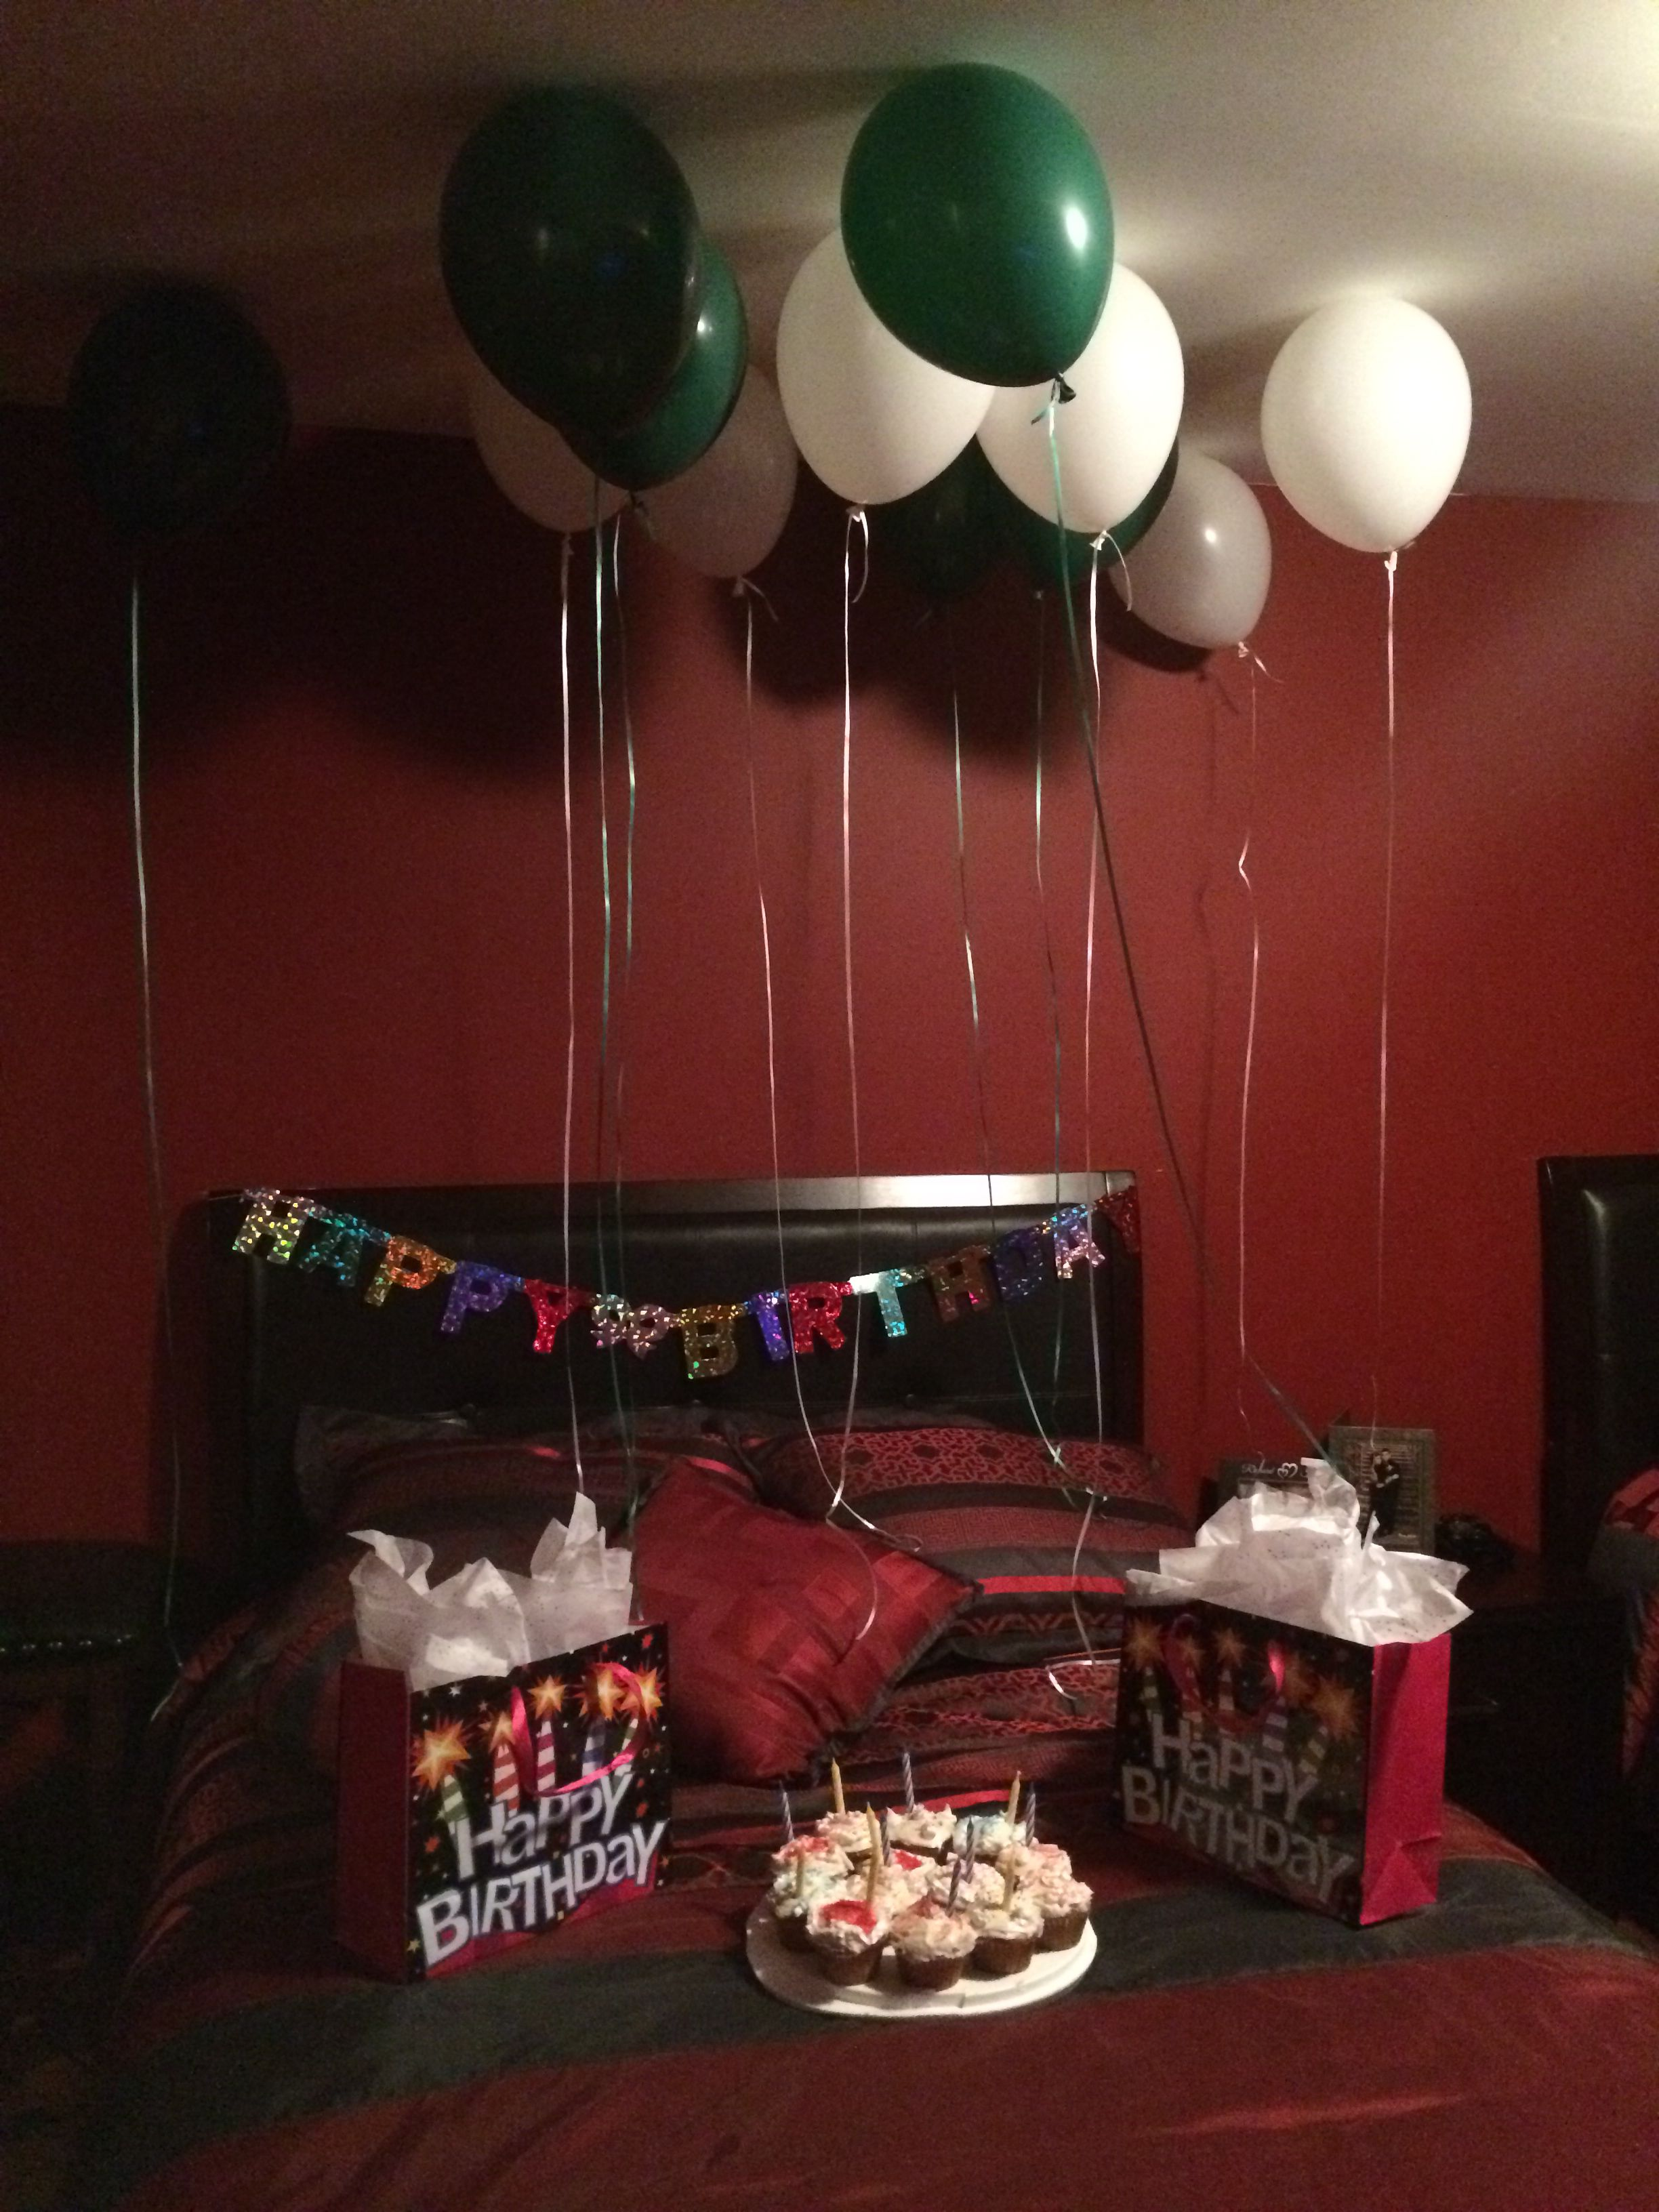 Made Cupcakes Got Balloons And His Presents To Use Them As Decoration In Room Also Birthday